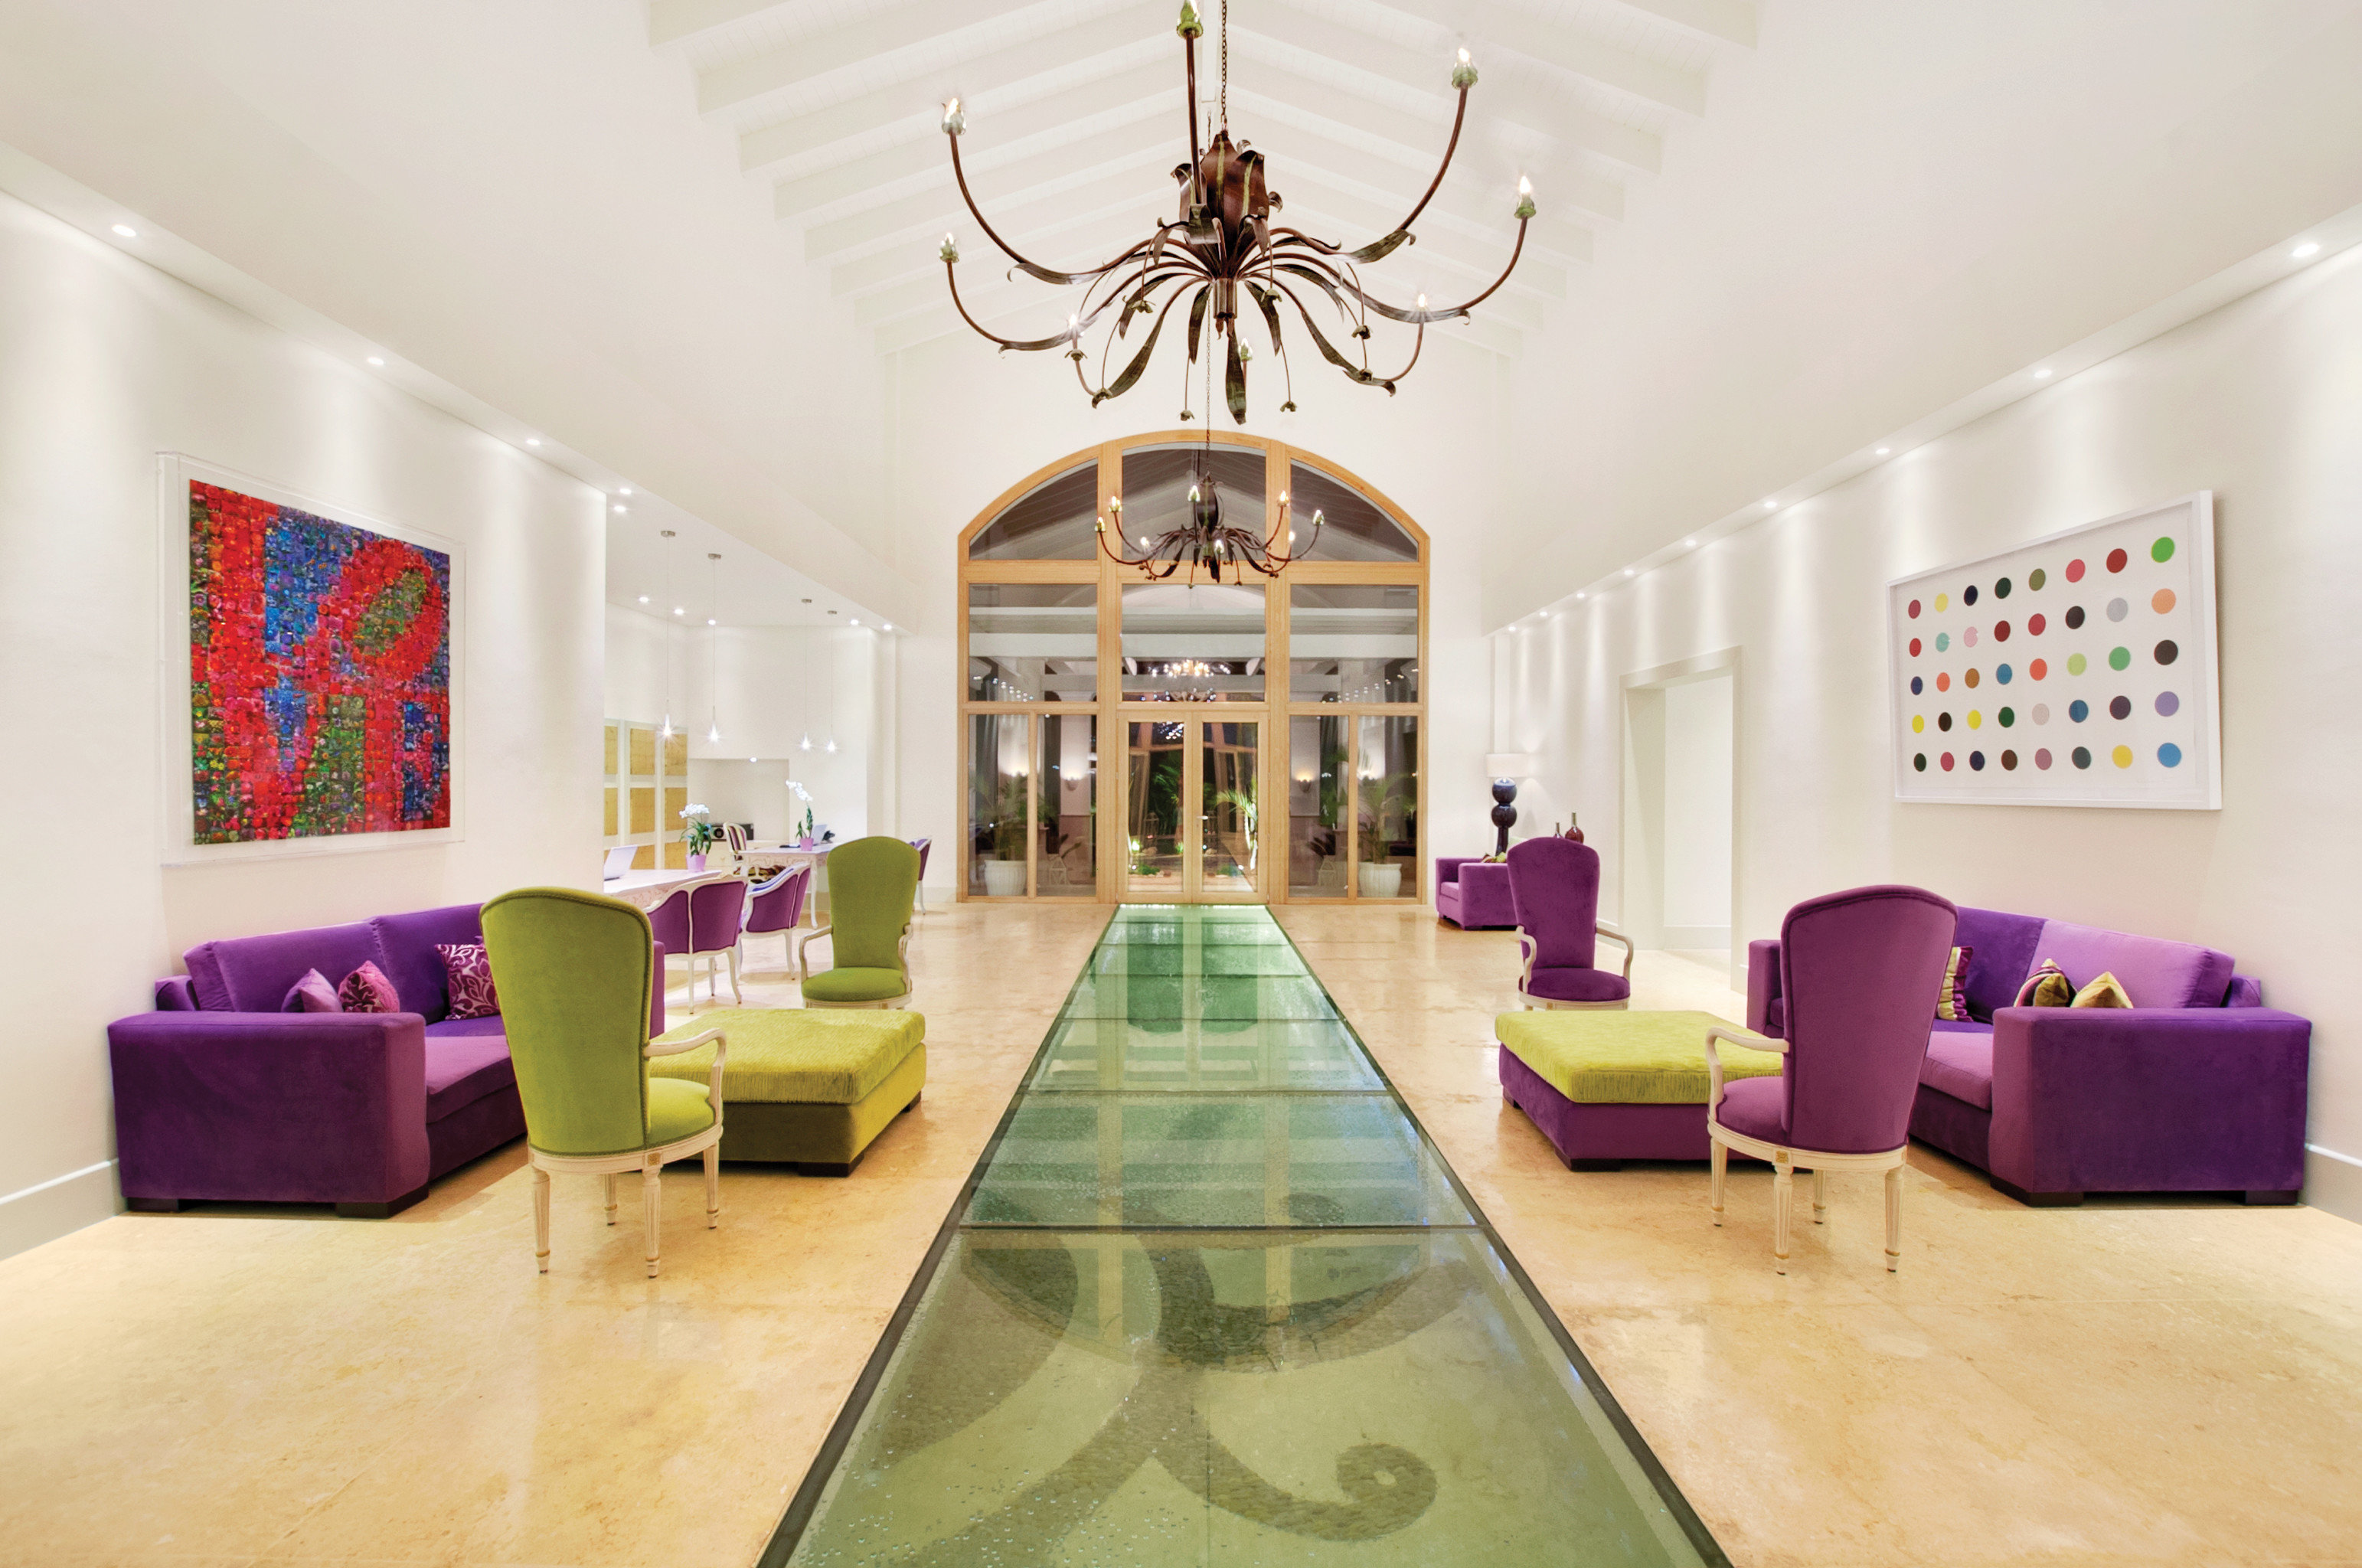 Hip Hotels Living Lobby Lounge Modern Tropical indoor wall floor room ceiling property living room estate dining room home interior design furniture mansion real estate Design Villa apartment area decorated